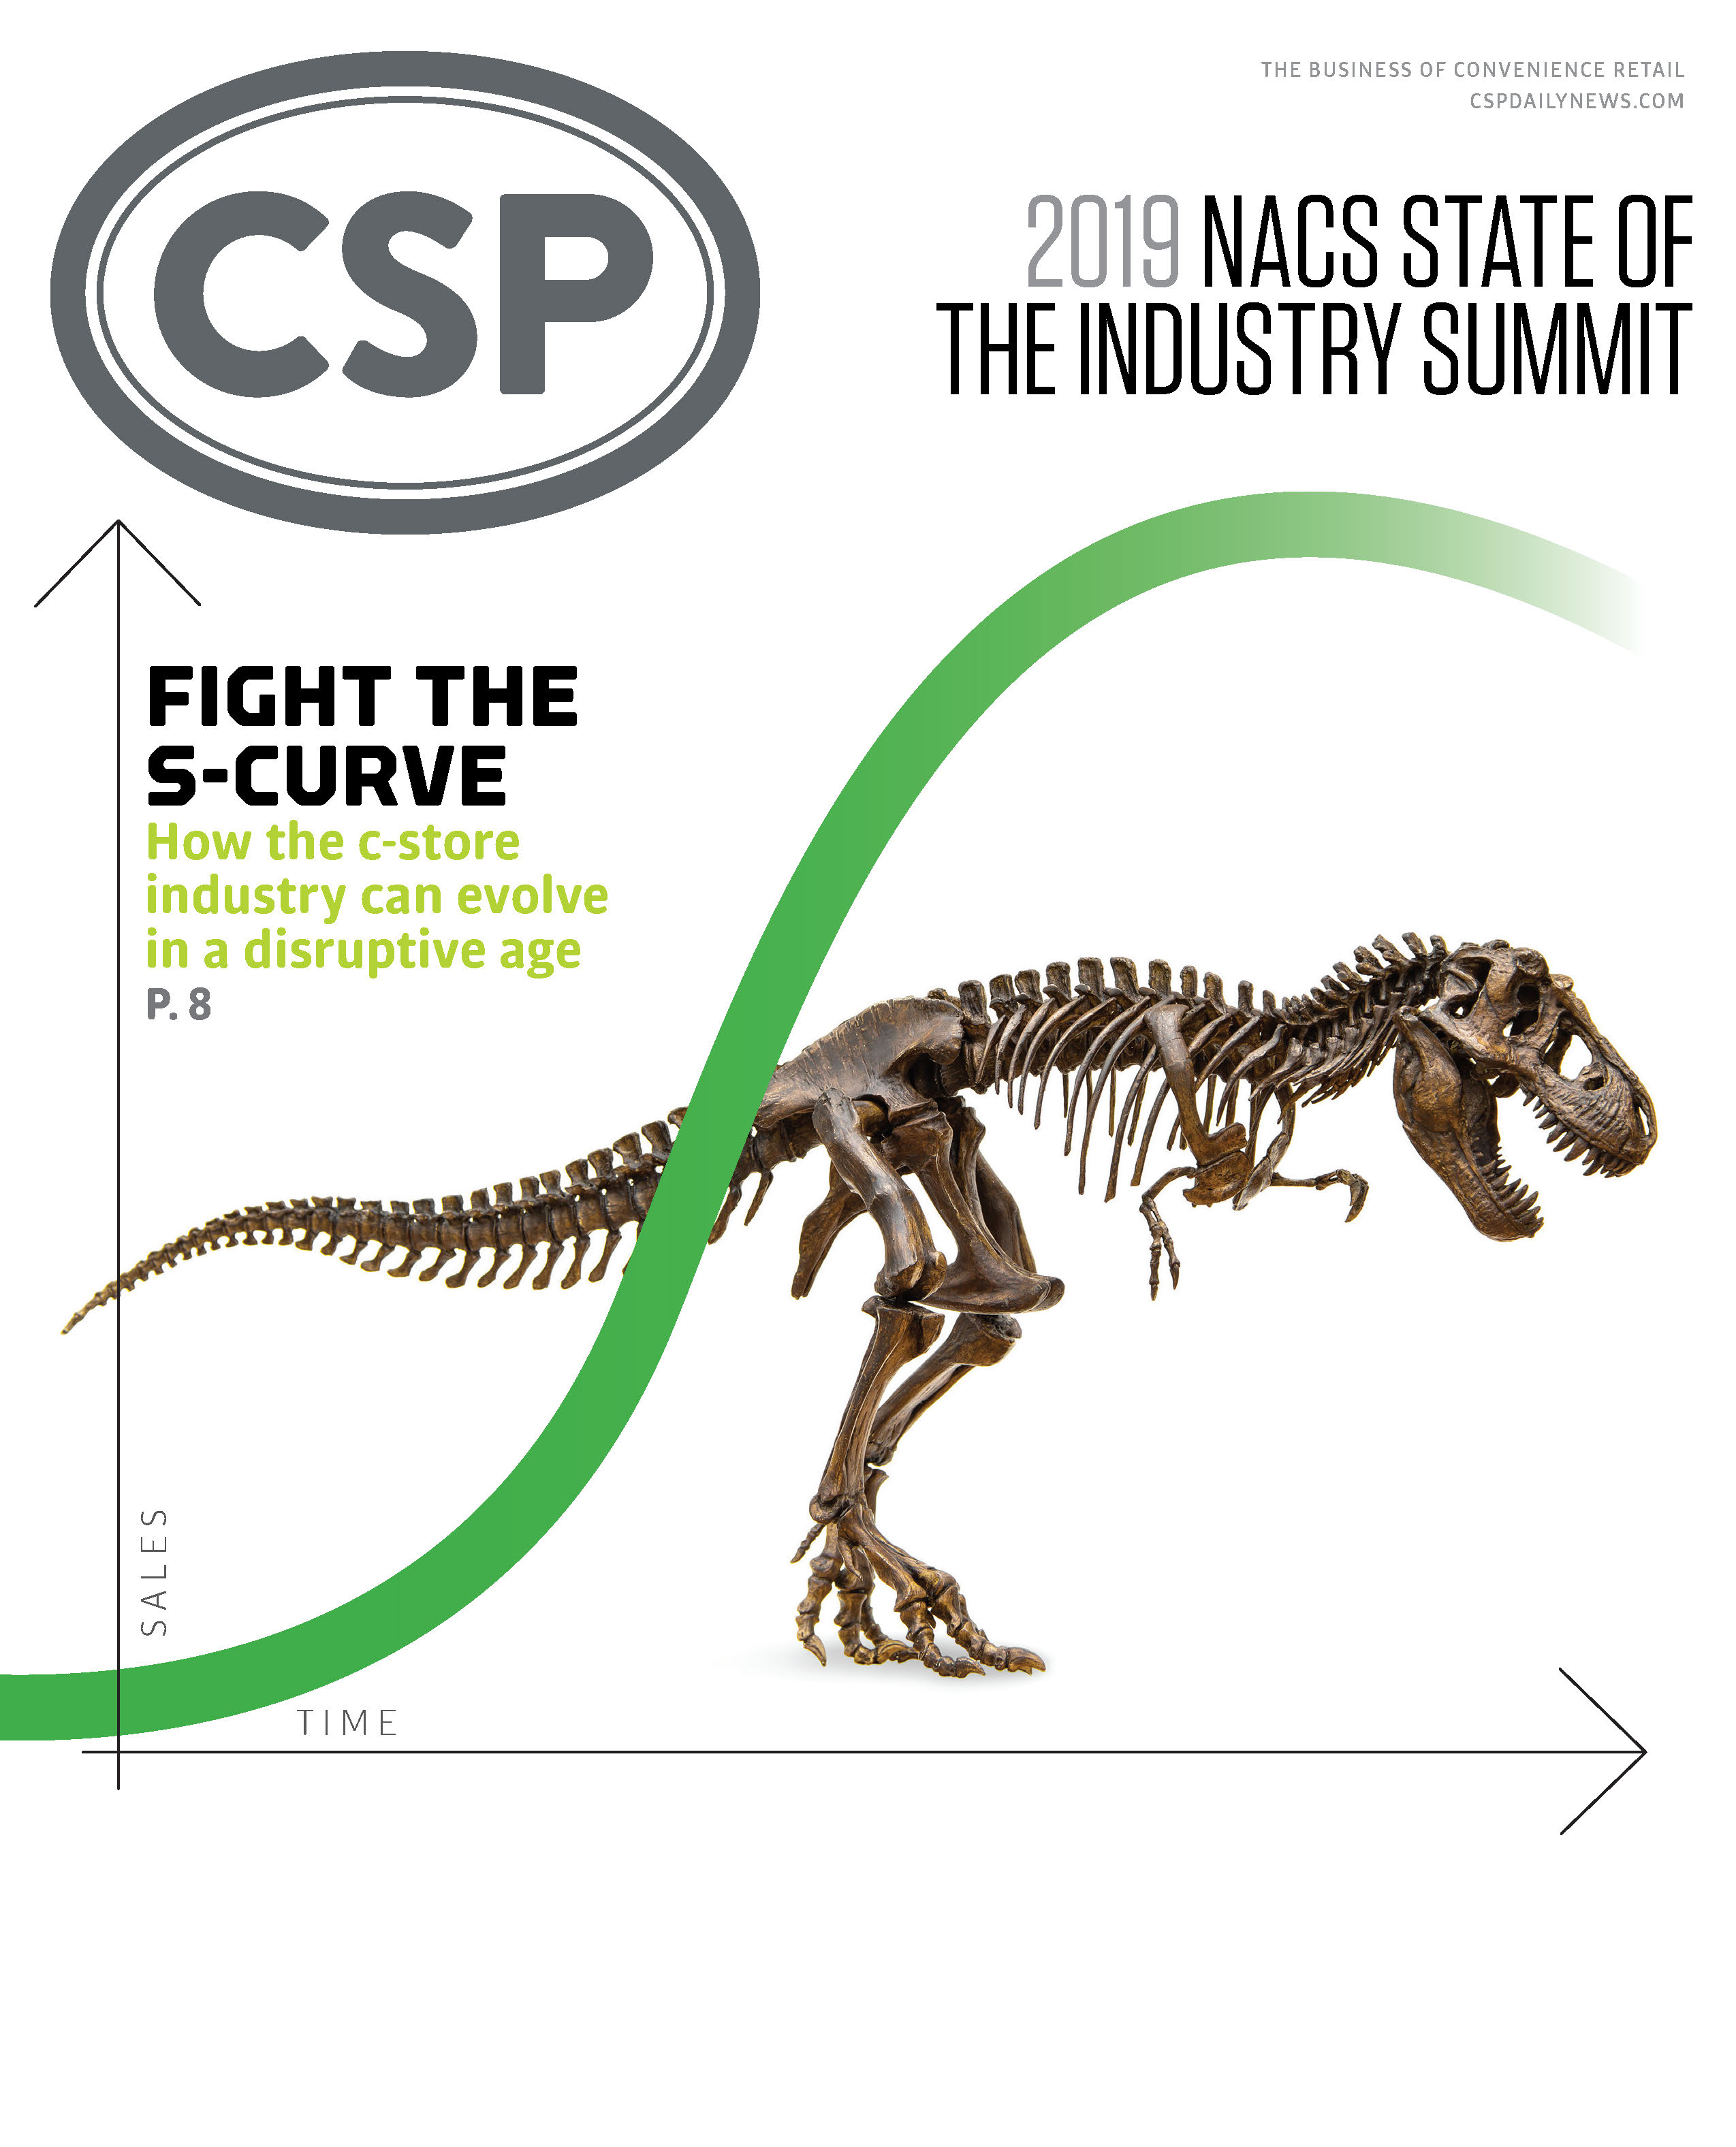 CSP Daily News Magazine 2019 State of the Industry Summit Issue